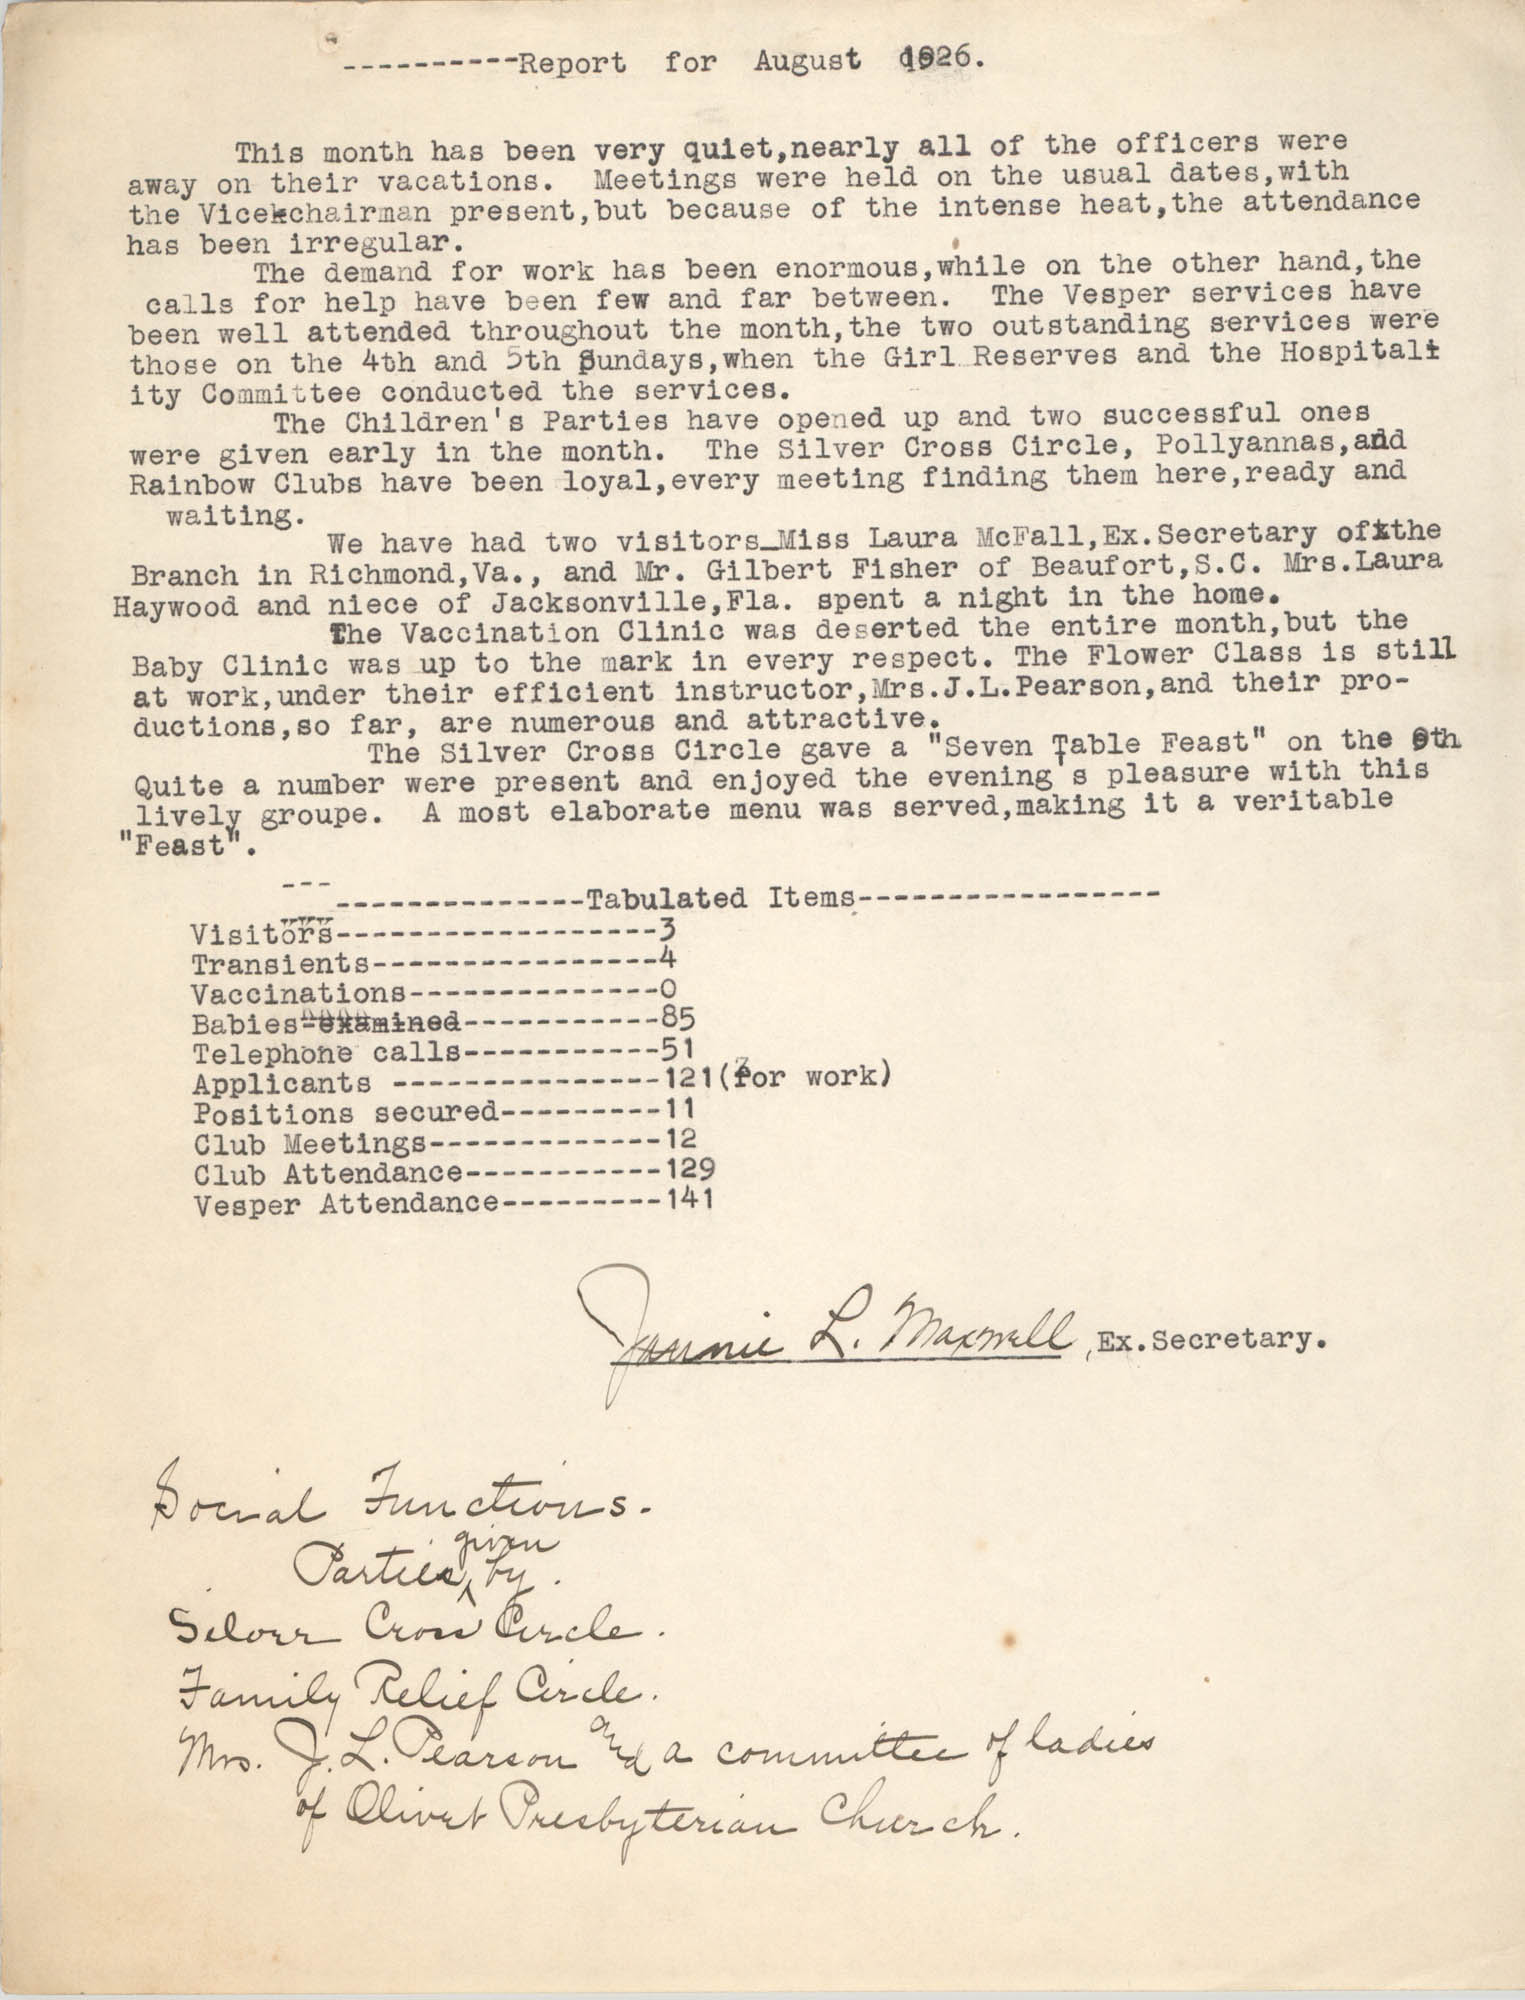 Monthly Report for the Coming Street Y.W.C.A., August 1926